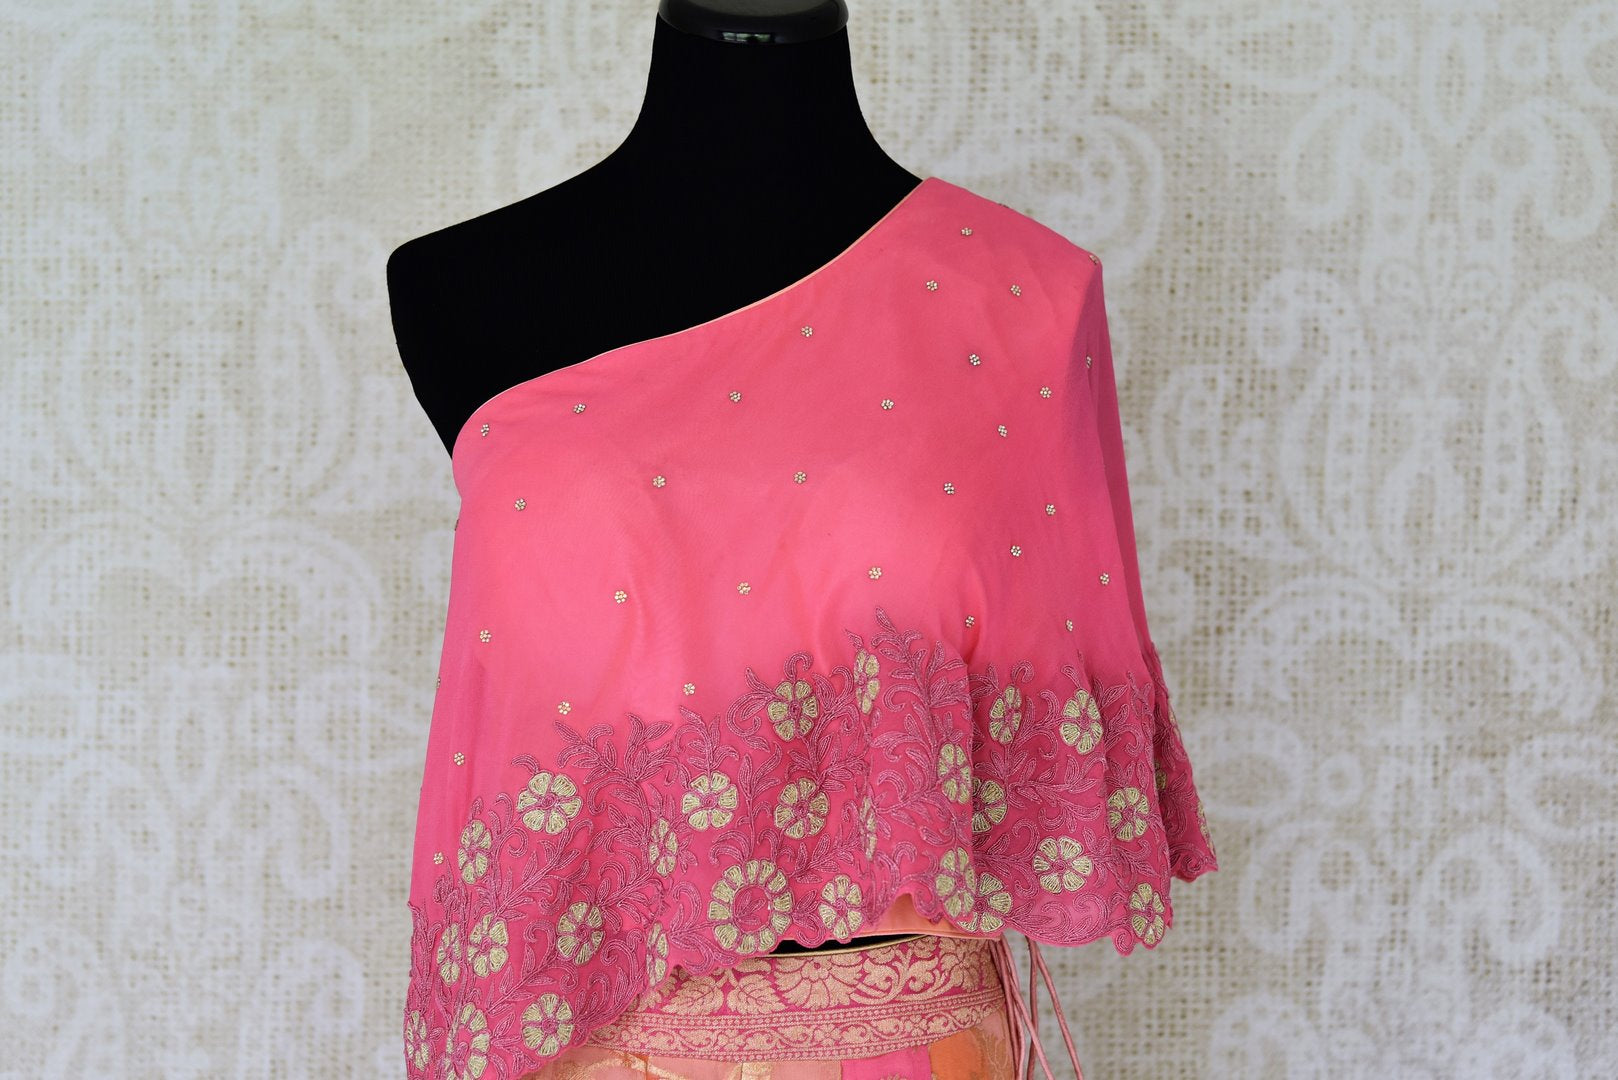 Buy pink georgette khaddi lehenga online in USA with one shoulder top. Make every occasion special with beautiful Indian dresses, wedding lehengas from Pure Elegance Indian fashion store in USA. You can also browse through our website and shop online.-side view